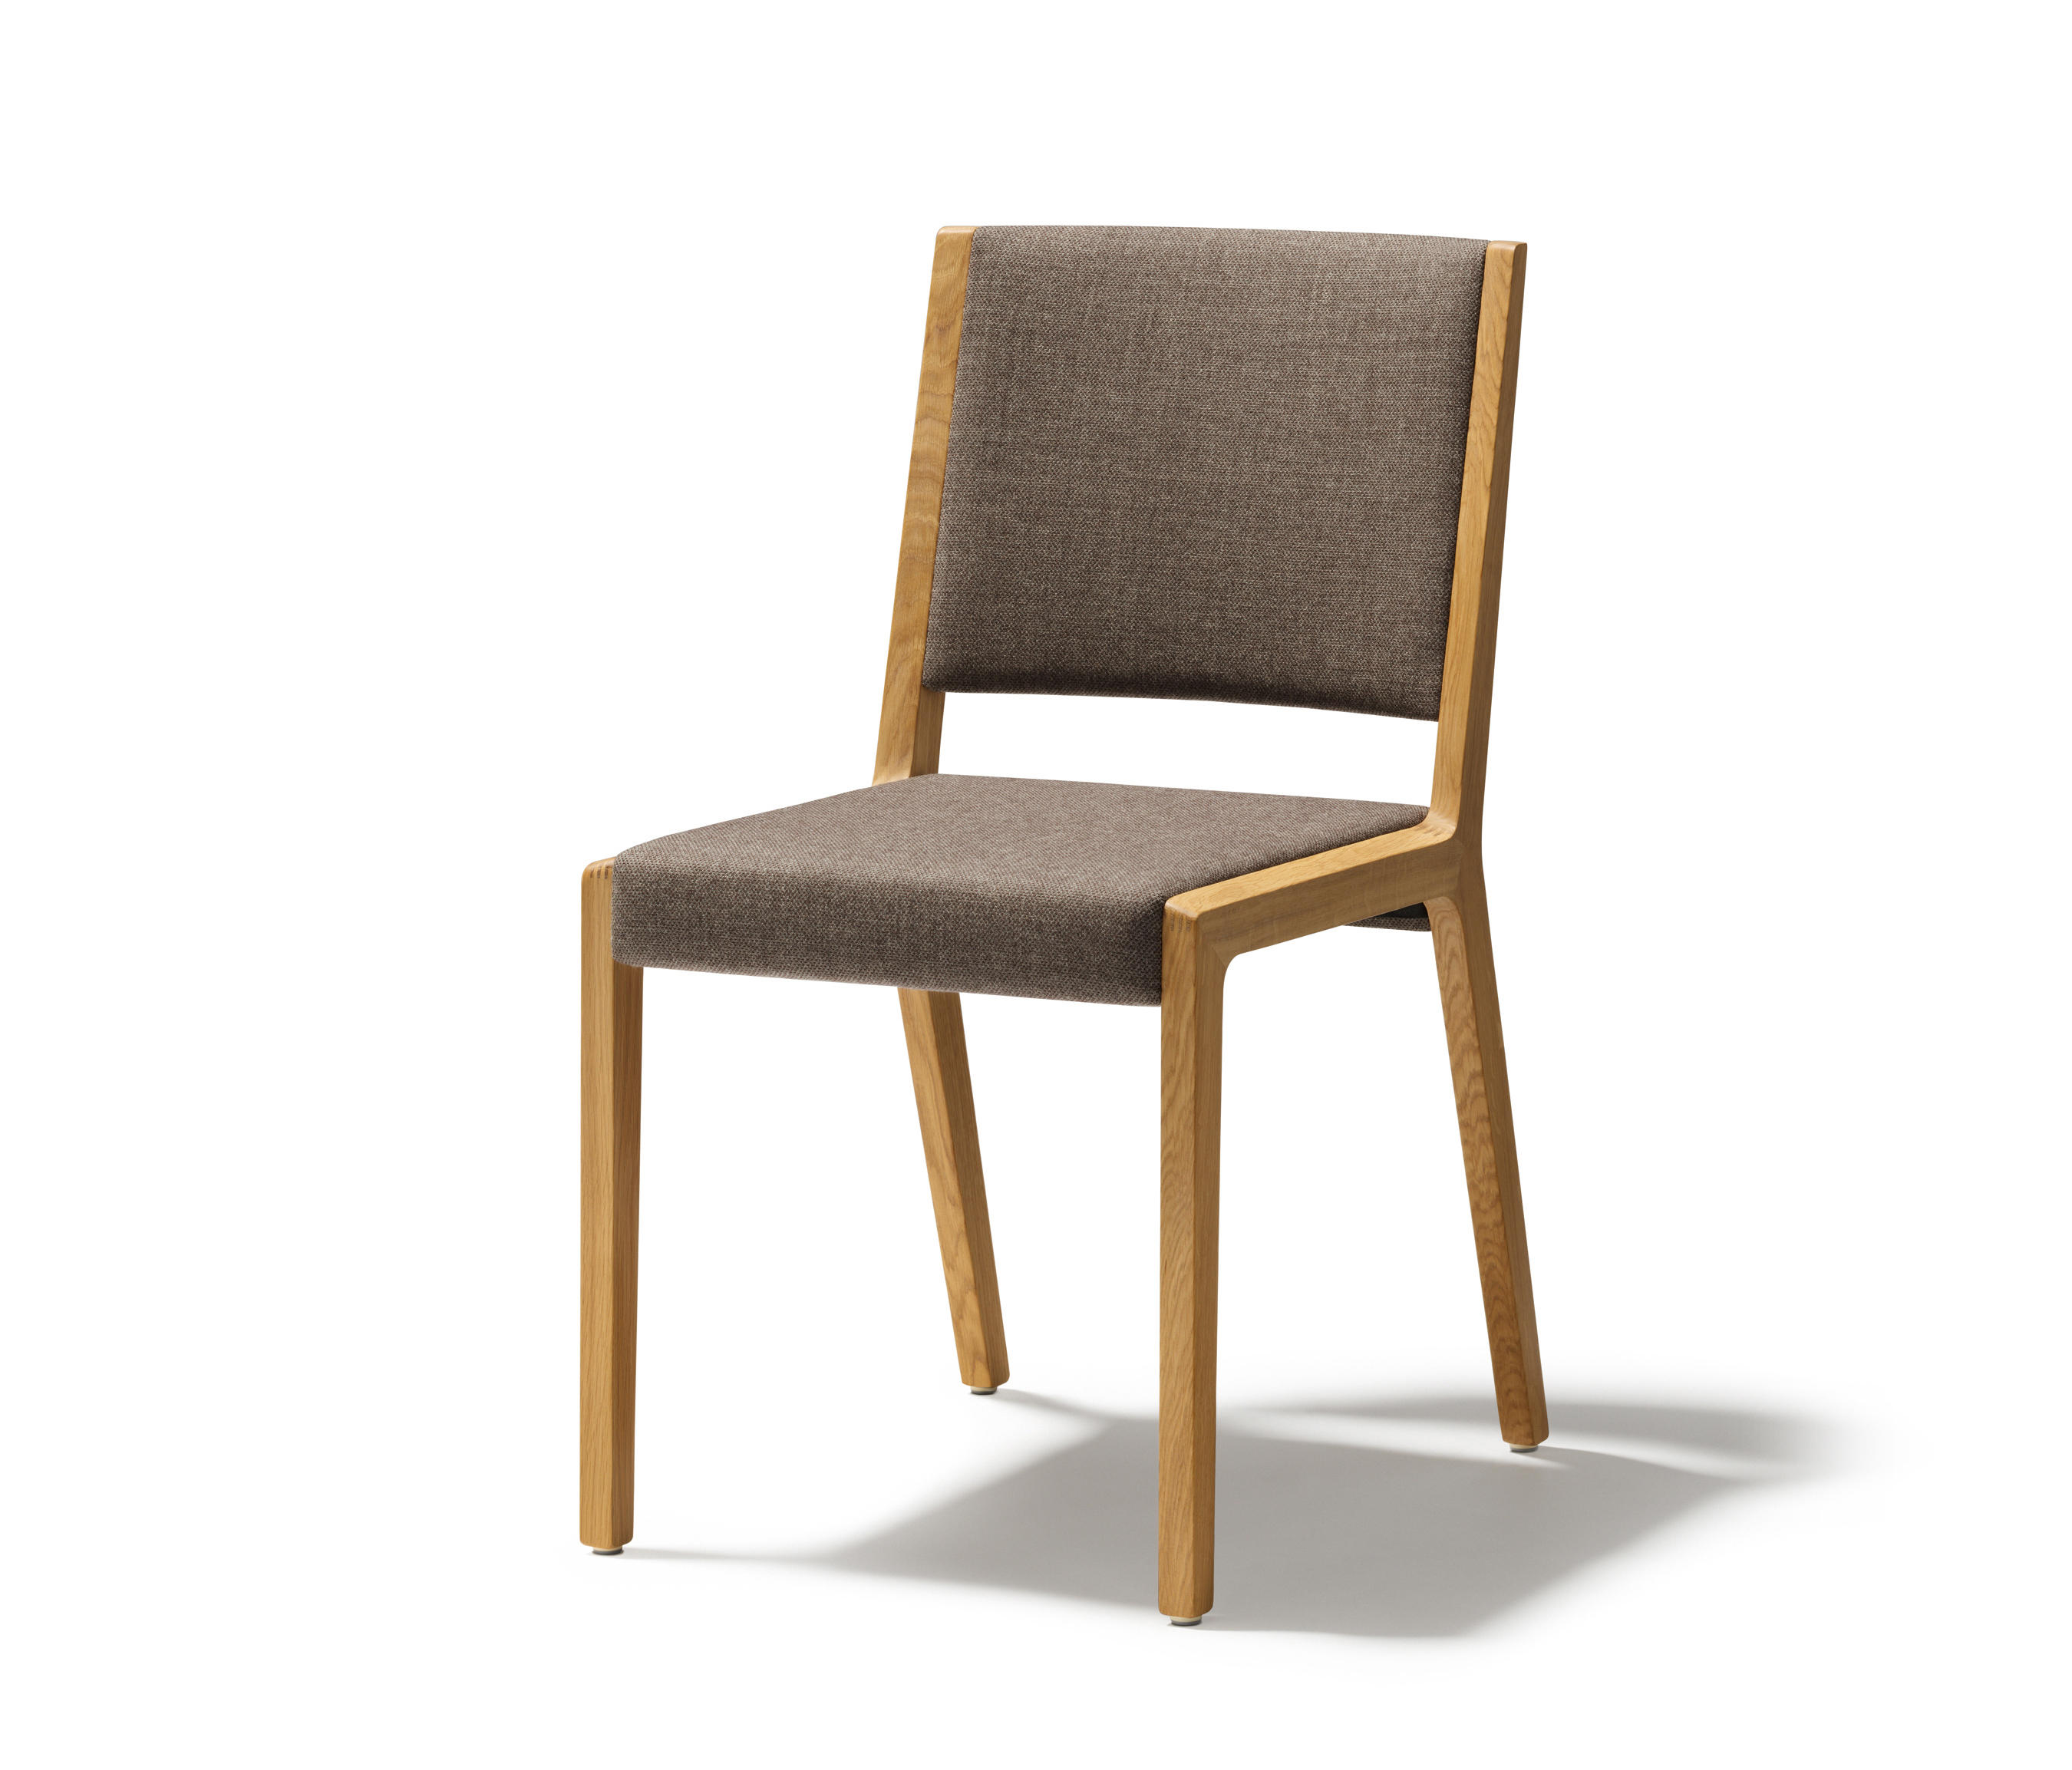 Eviva Chair Chairs From Team 7 Architonic